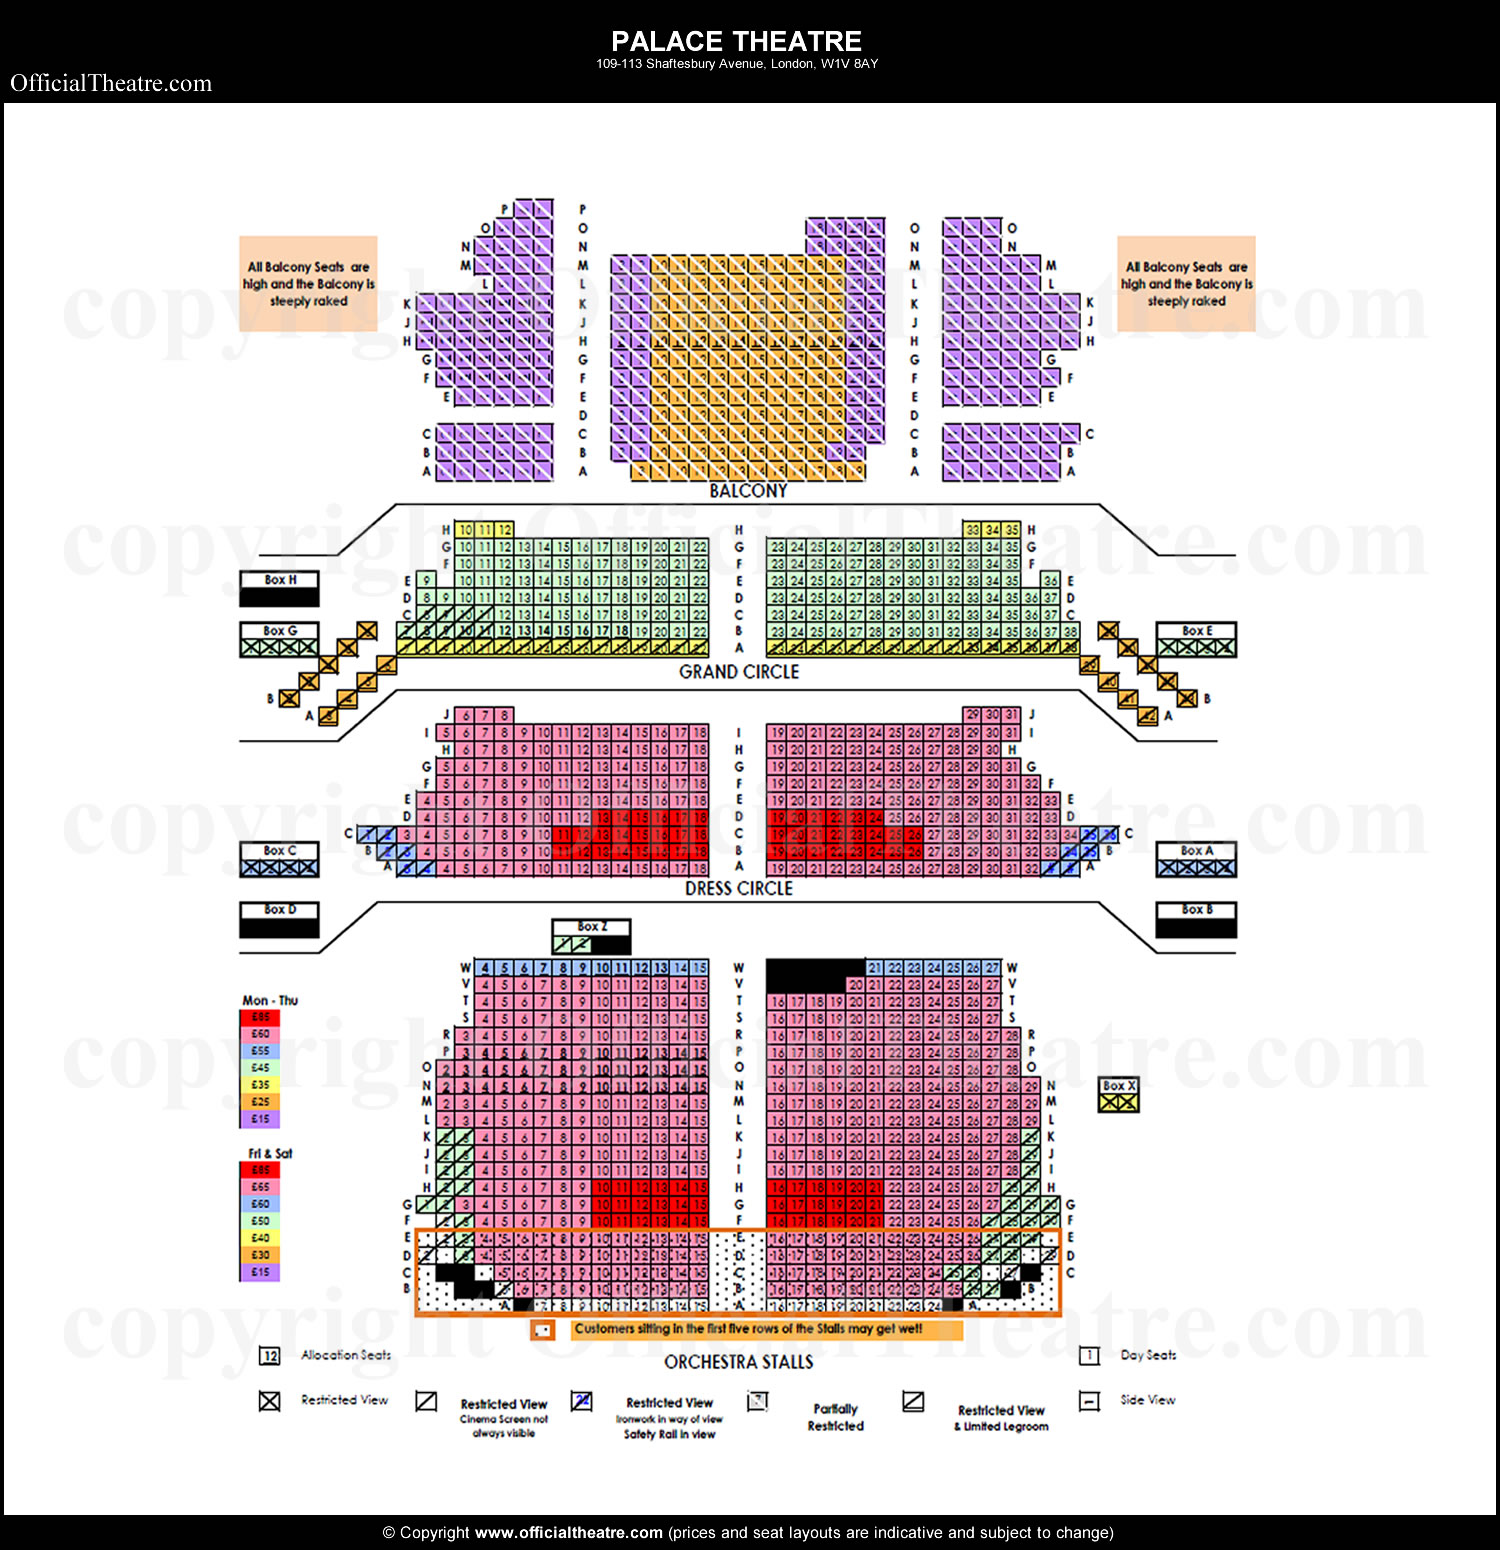 Seating Chart Palace Theater Brokeasshome Com